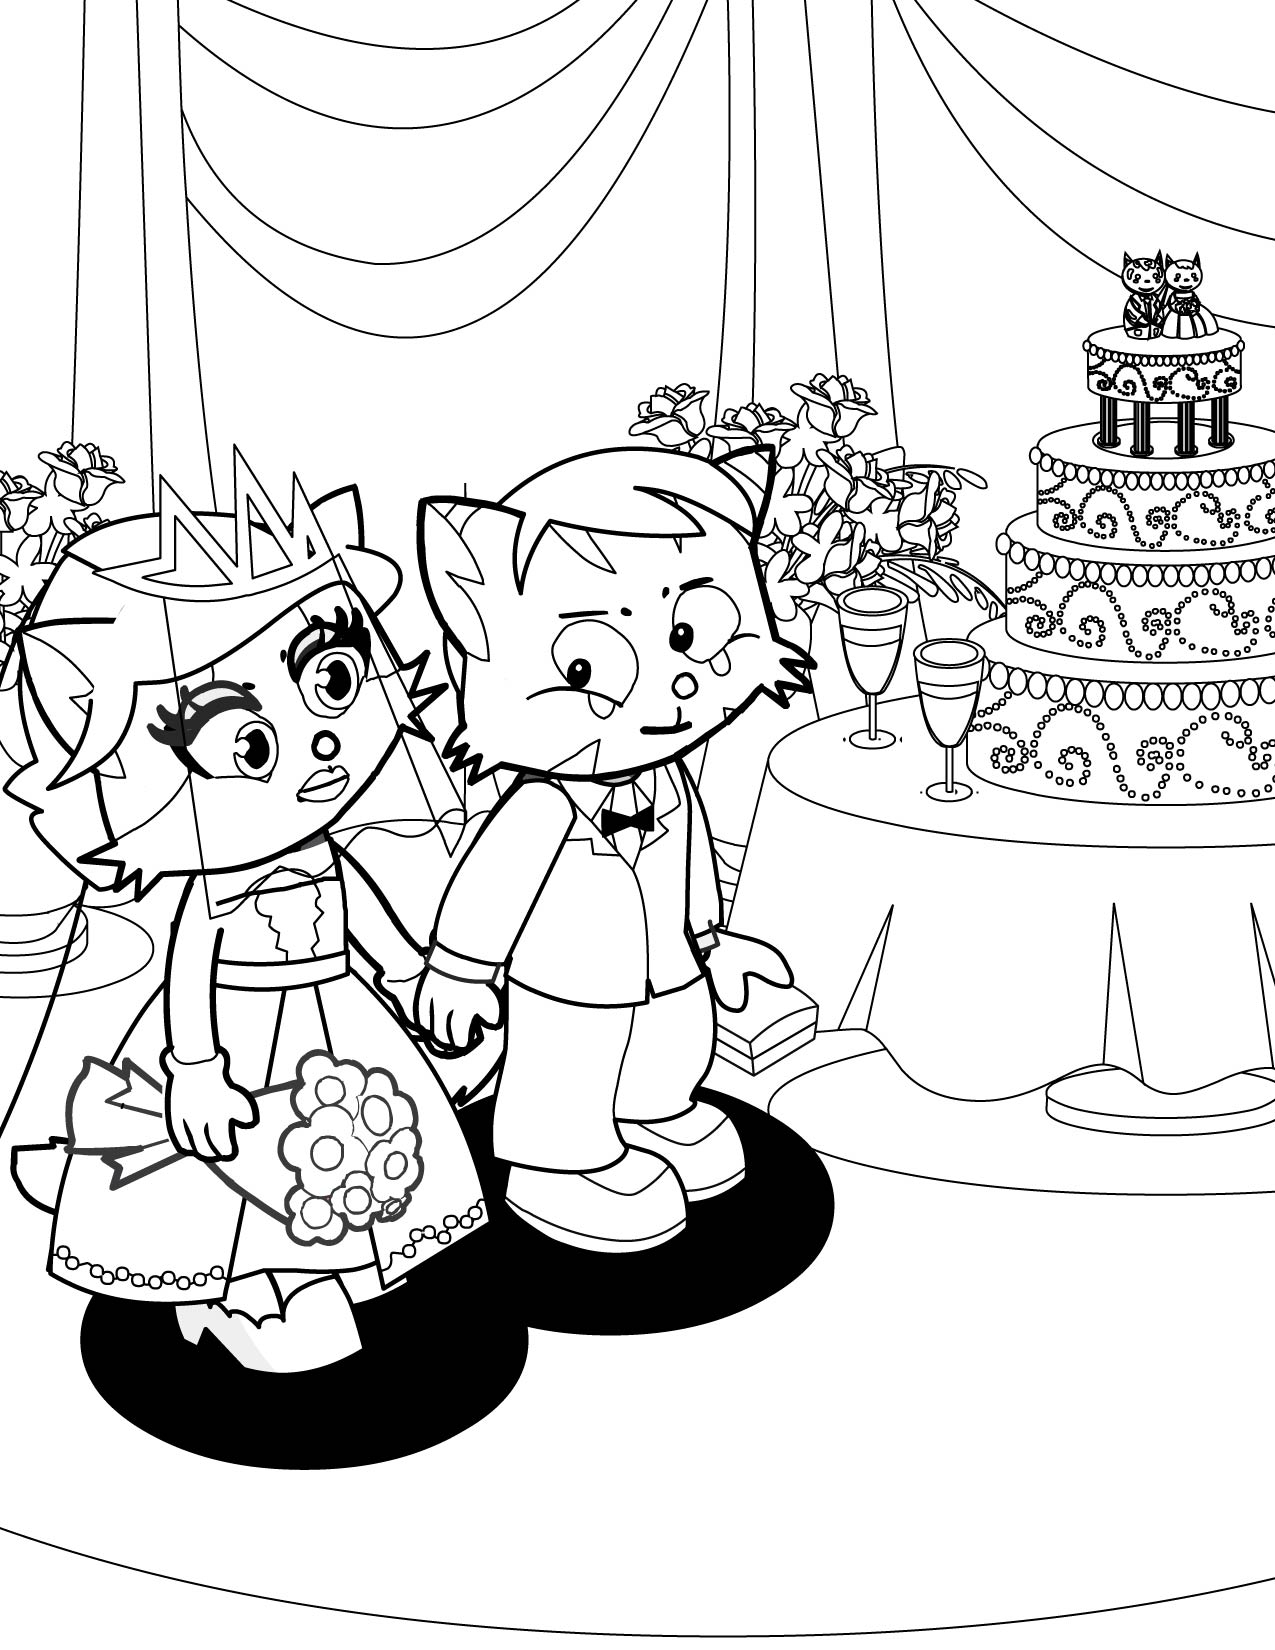 bride and groom pictures to colour in bride groom coloring page at getcoloringscom free and pictures bride in to colour groom